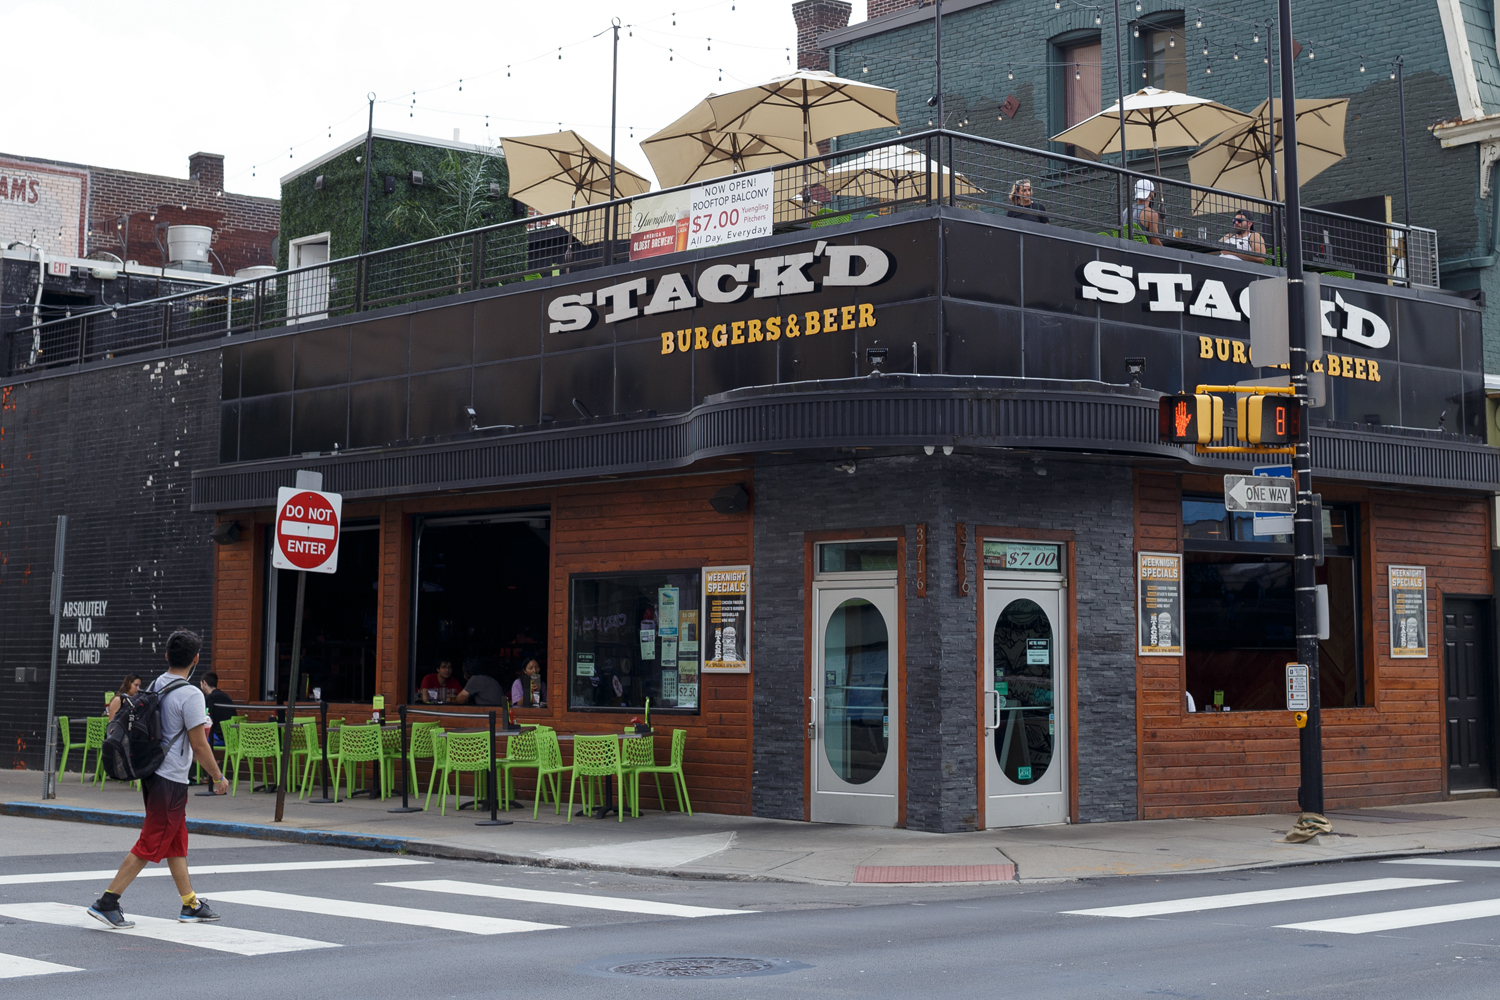 Stack'd restaurant on Forbes Avenue.